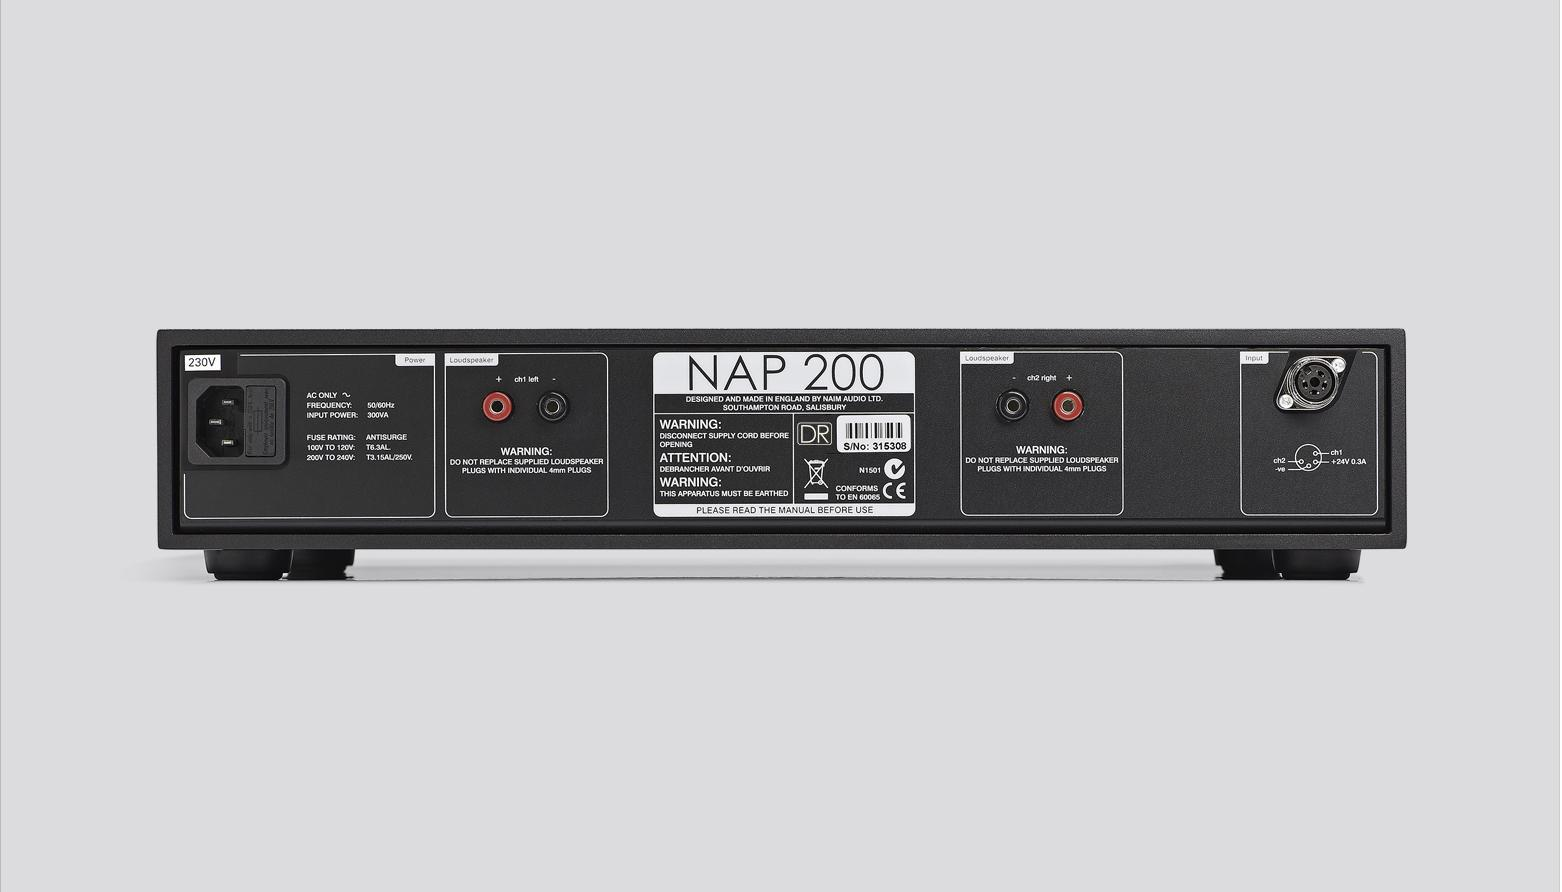 NAP 200 Power Amplifier - Rear View